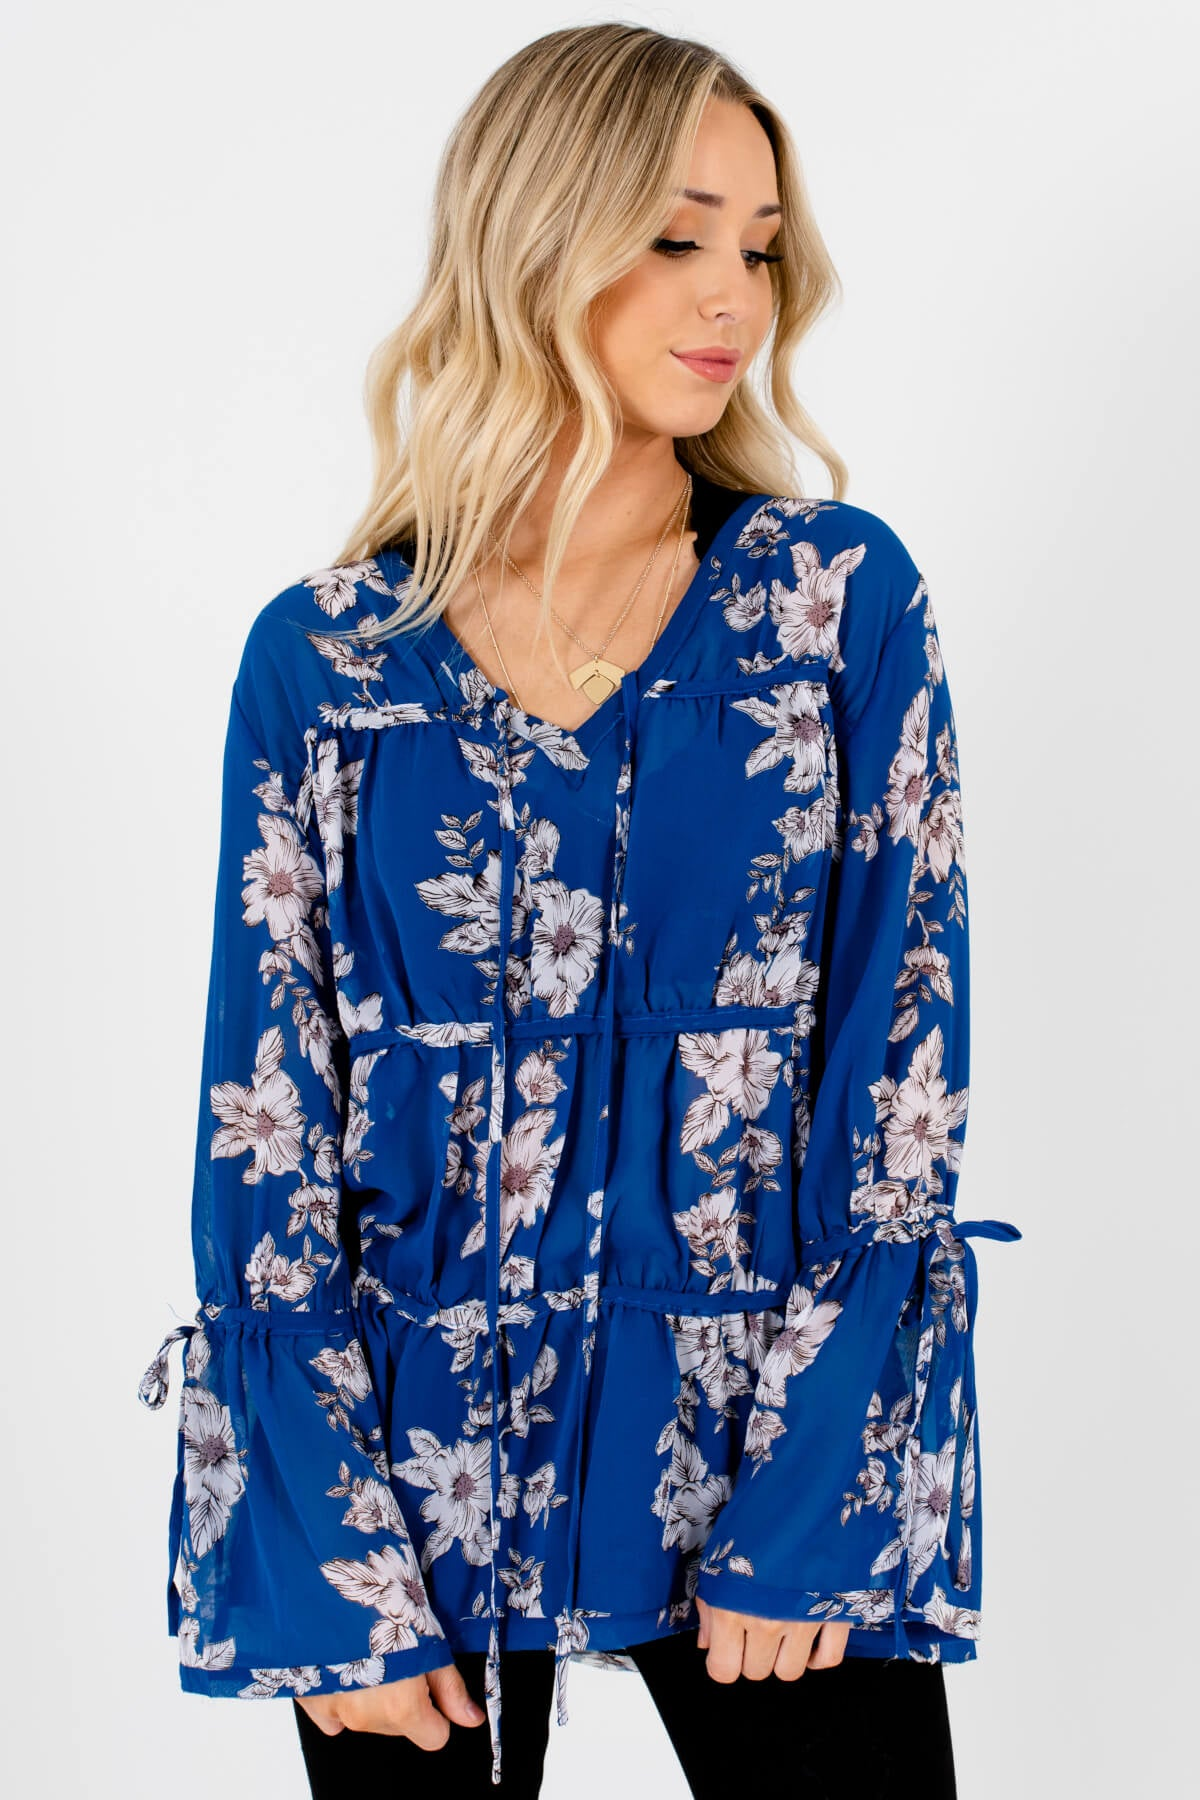 Royal Blue Floral Tiered Bohemian Blouses Affordable Online Boutique